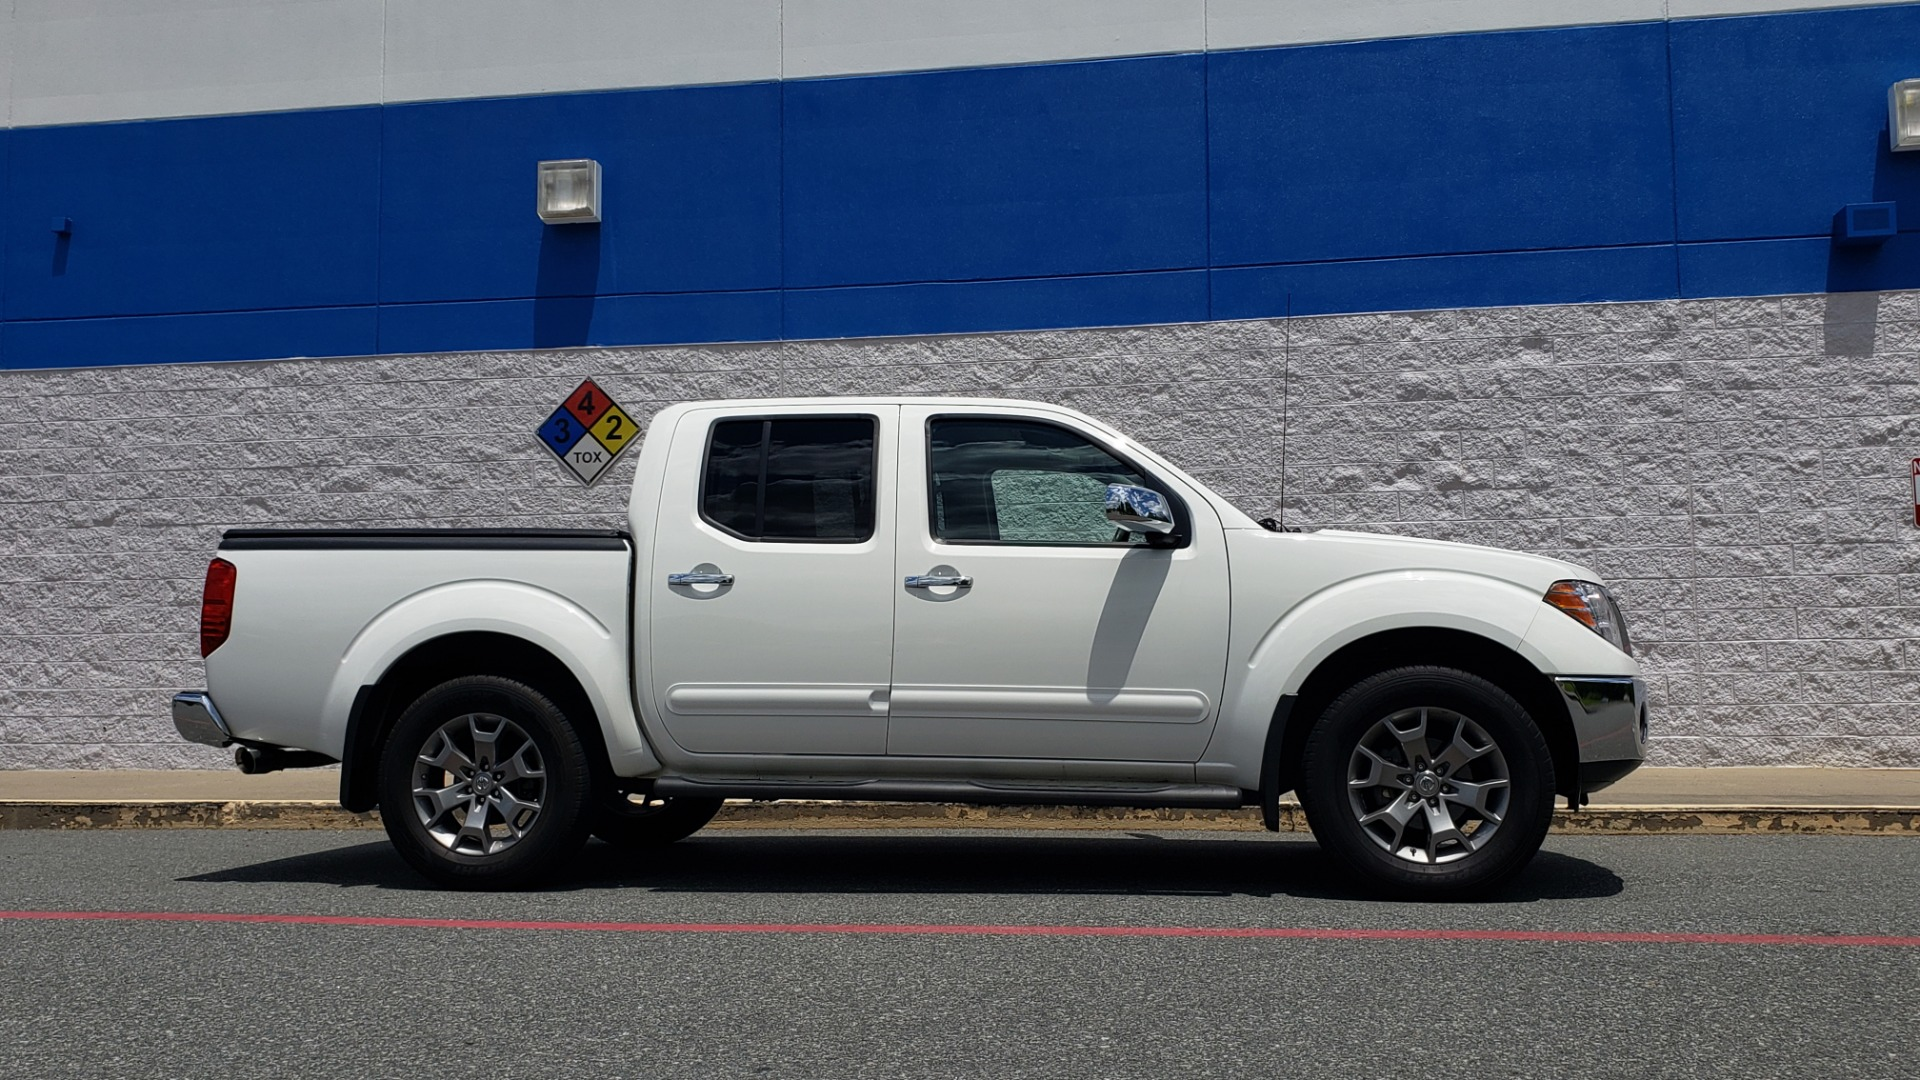 Used 2019 Nissan FRONTIER SL CREW CAB / 4X4 / NAV / SUNROOF / ROCKFORD FOSGATE / LOADED for sale $31,495 at Formula Imports in Charlotte NC 28227 3